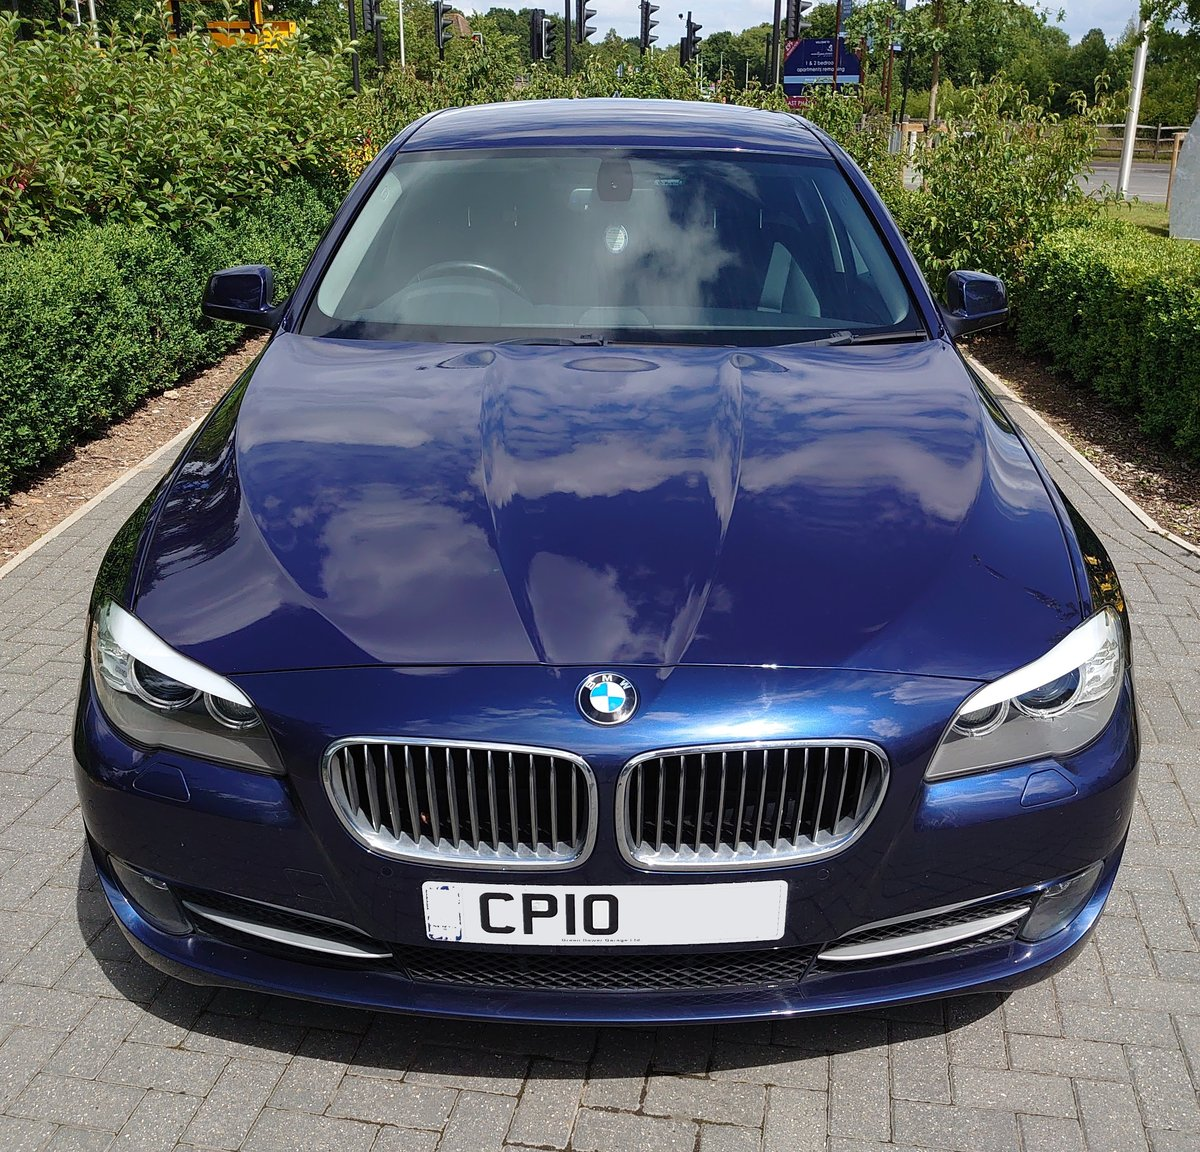 2010 BMW 530d SE + Electric pack - Deep Sea Blue For Sale (picture 1 of 6)